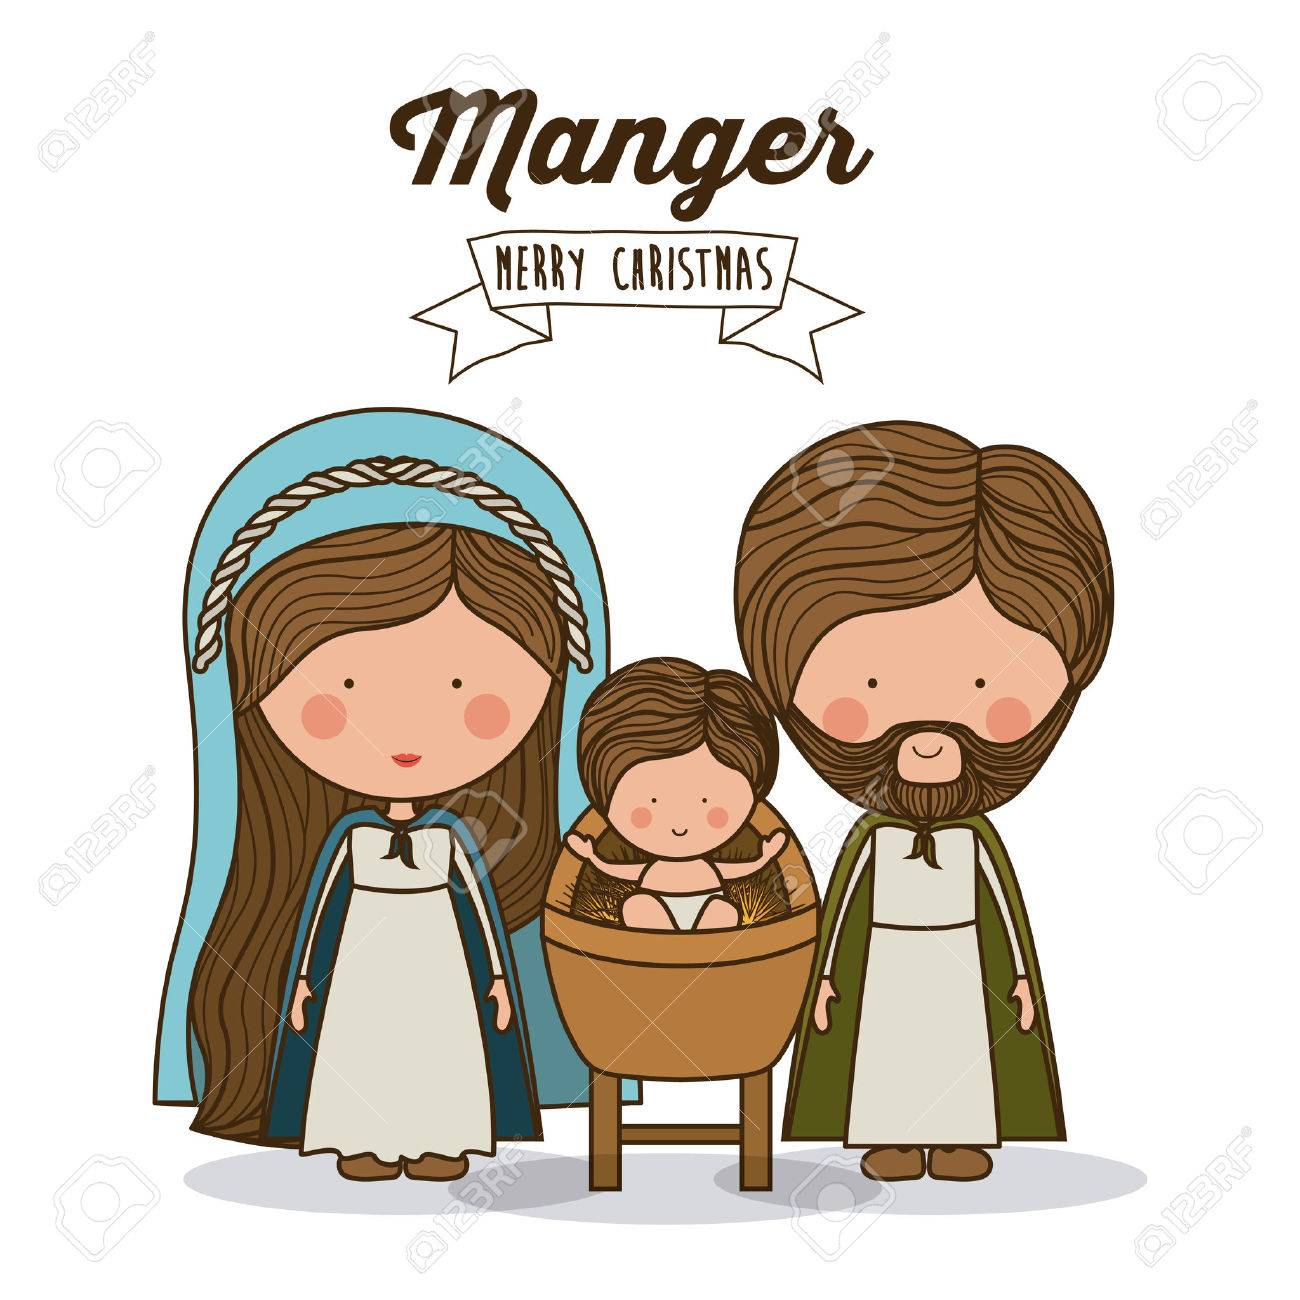 Merry Christmas concept about holy family design - 44930082